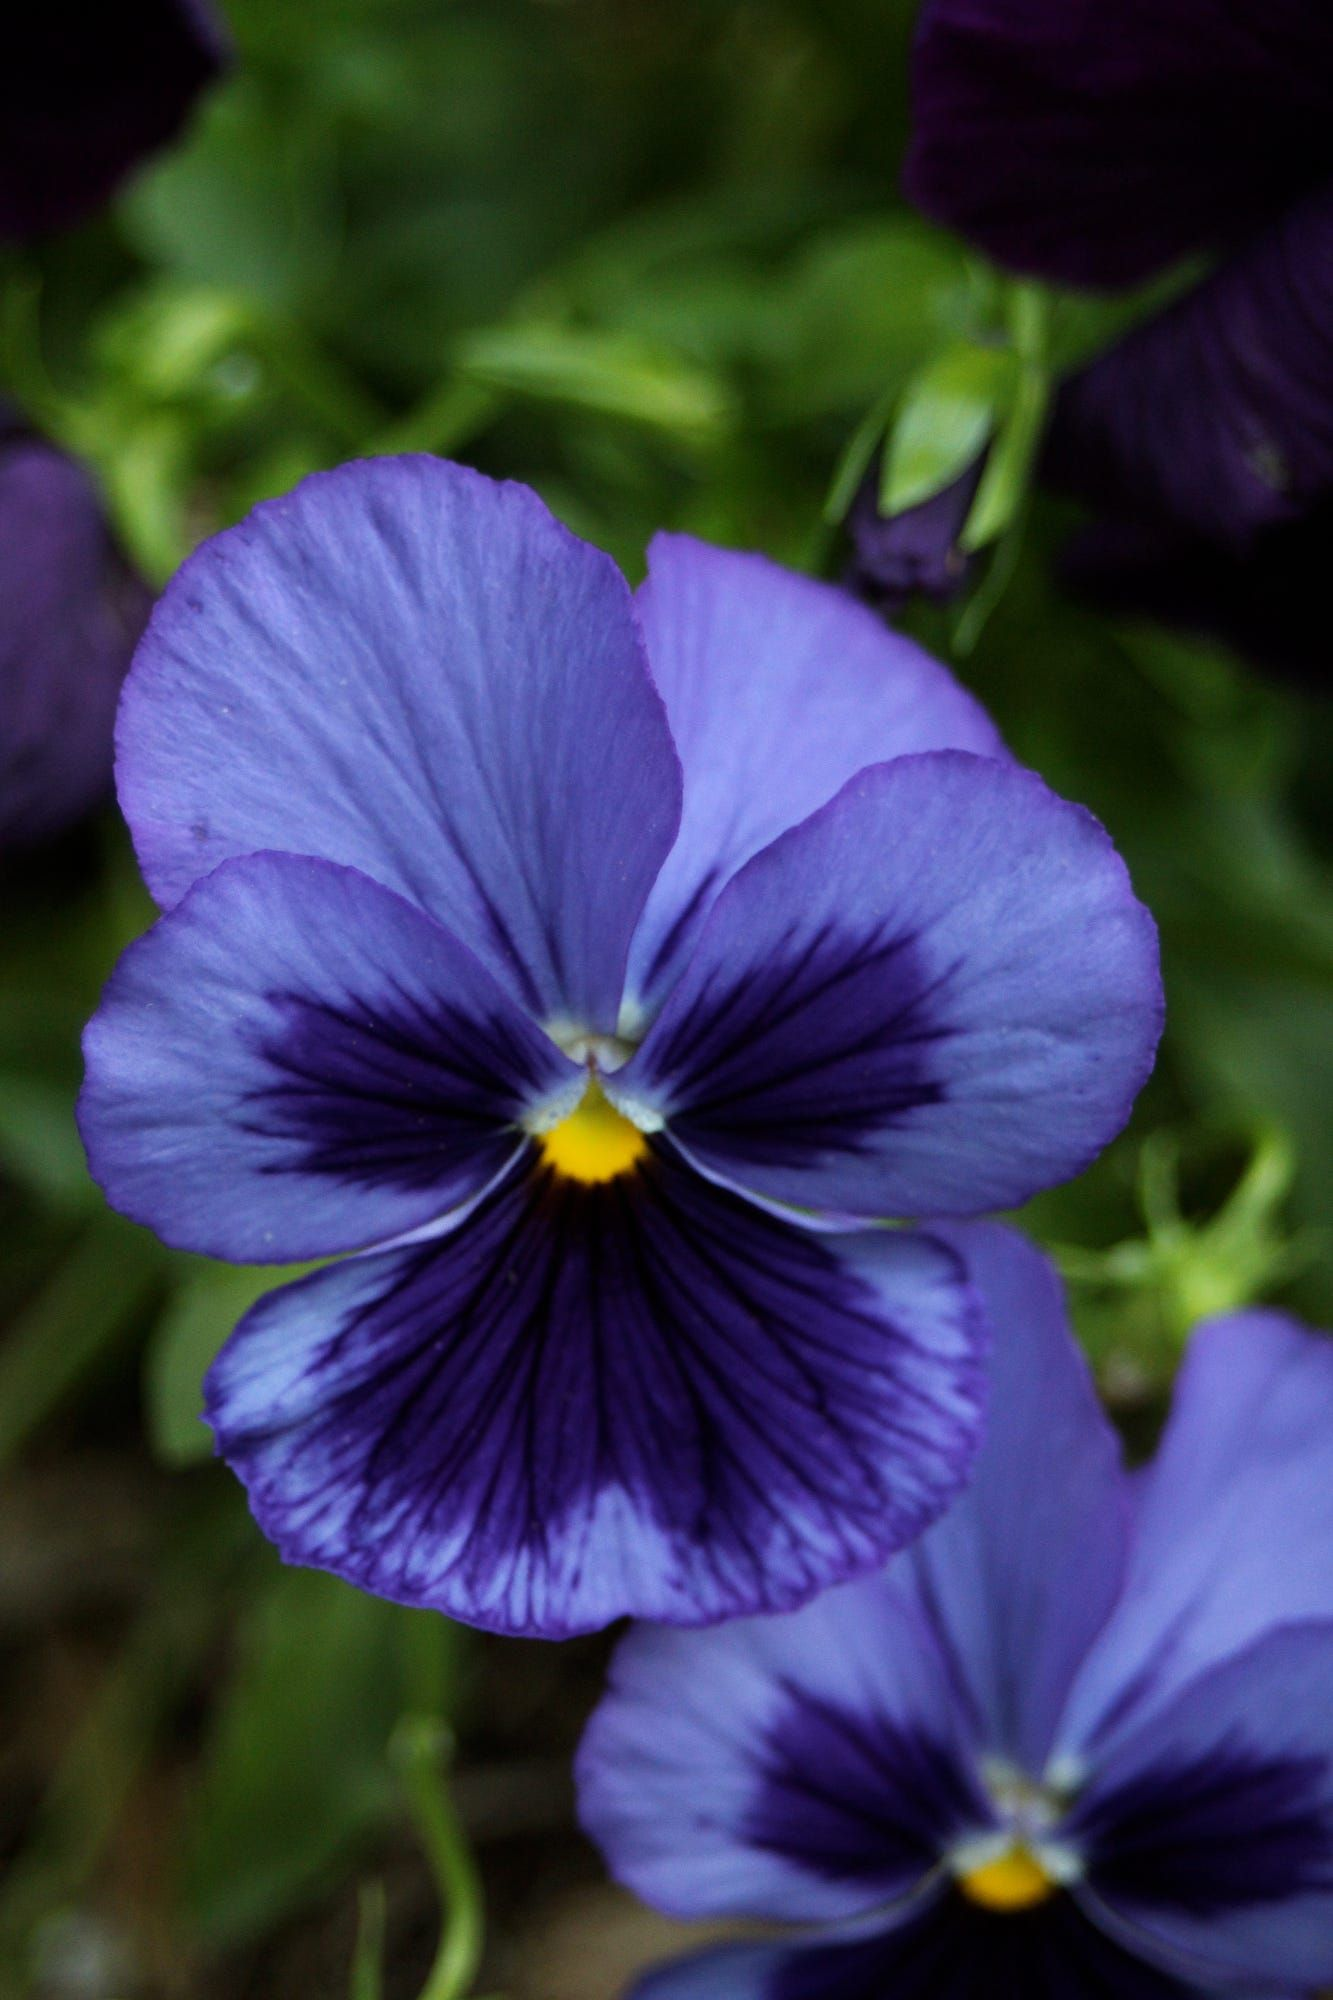 A Purple Pansy With Images Pansies Flowers Wonderful Flowers Purple Flowers